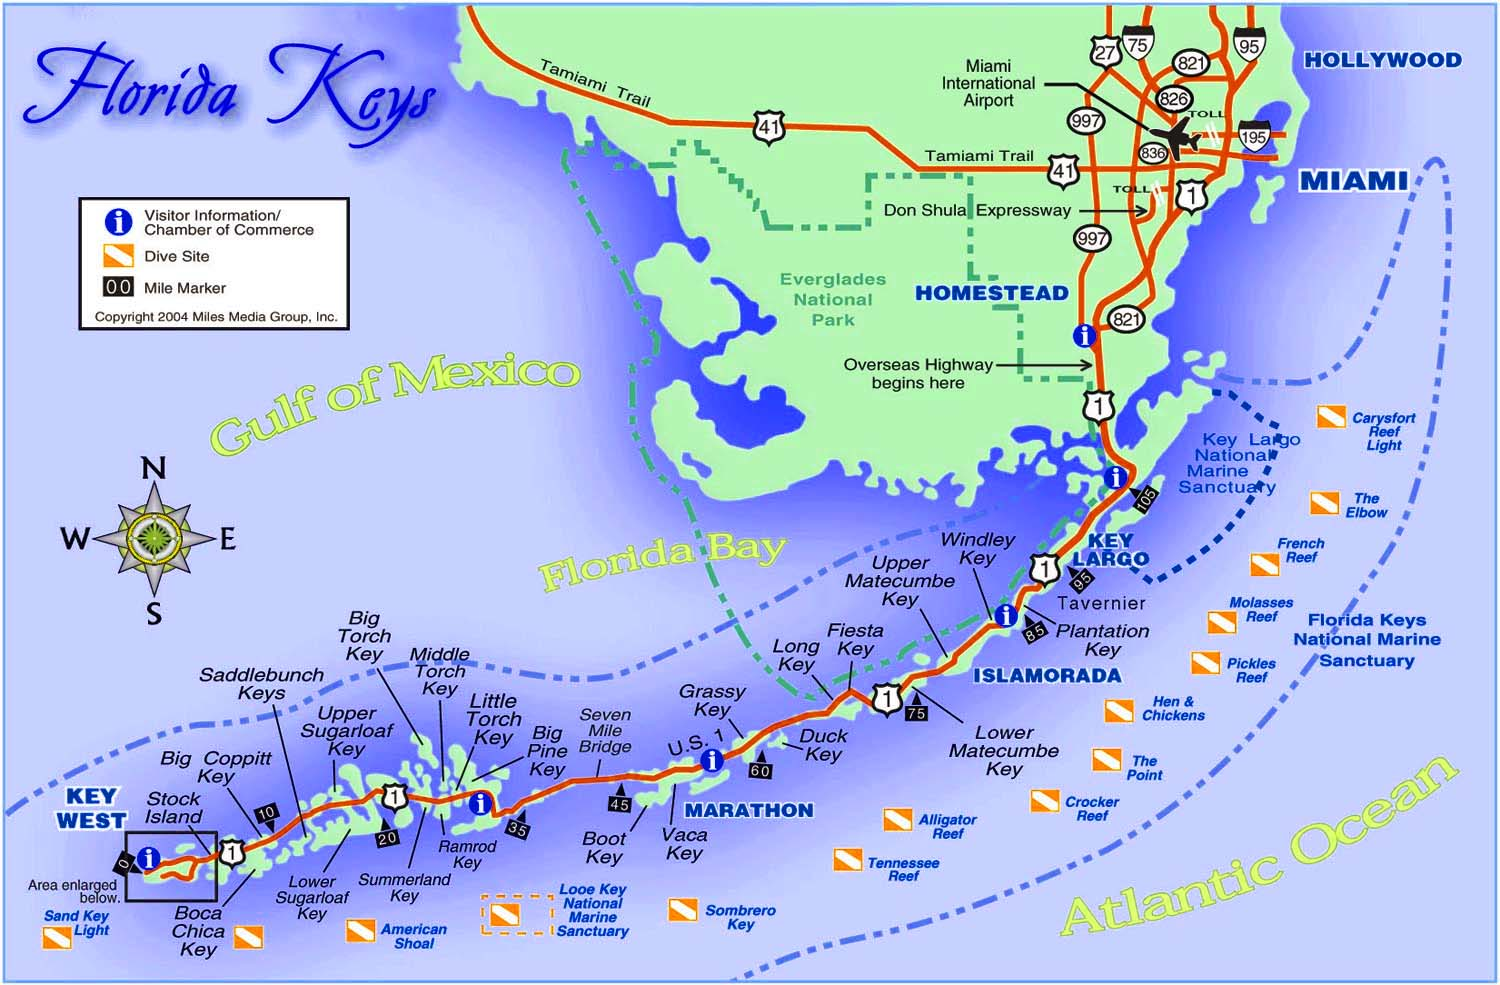 Florida Keys Maps.21 Amazing Map Of Florida Keys Islands Bnhspine Com